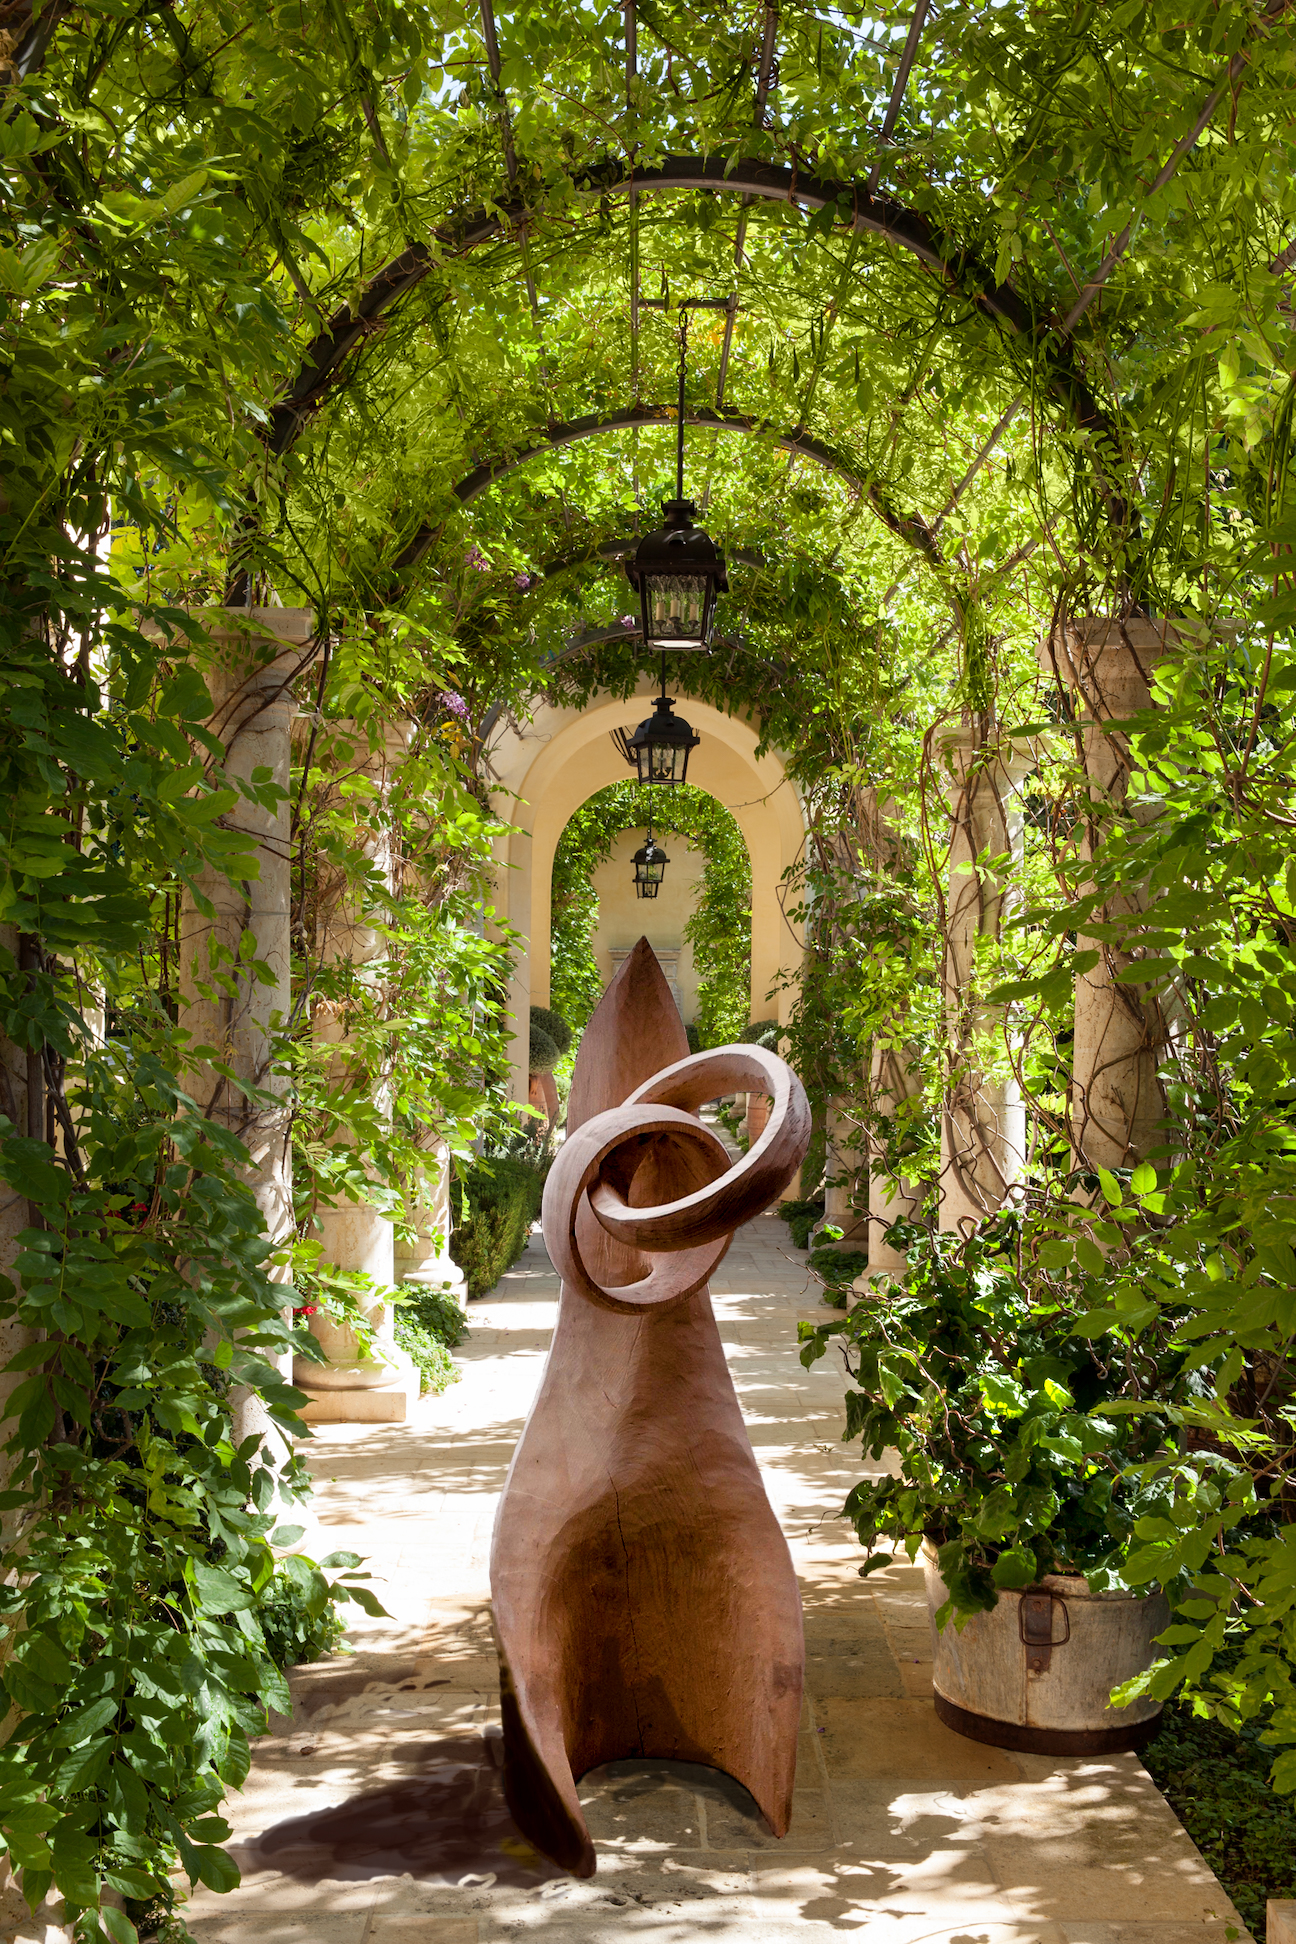 wooden wedding rings superimposed in an archway of greenery. Simon O'Rourke made the rings. They are part of his wooden wearables range.